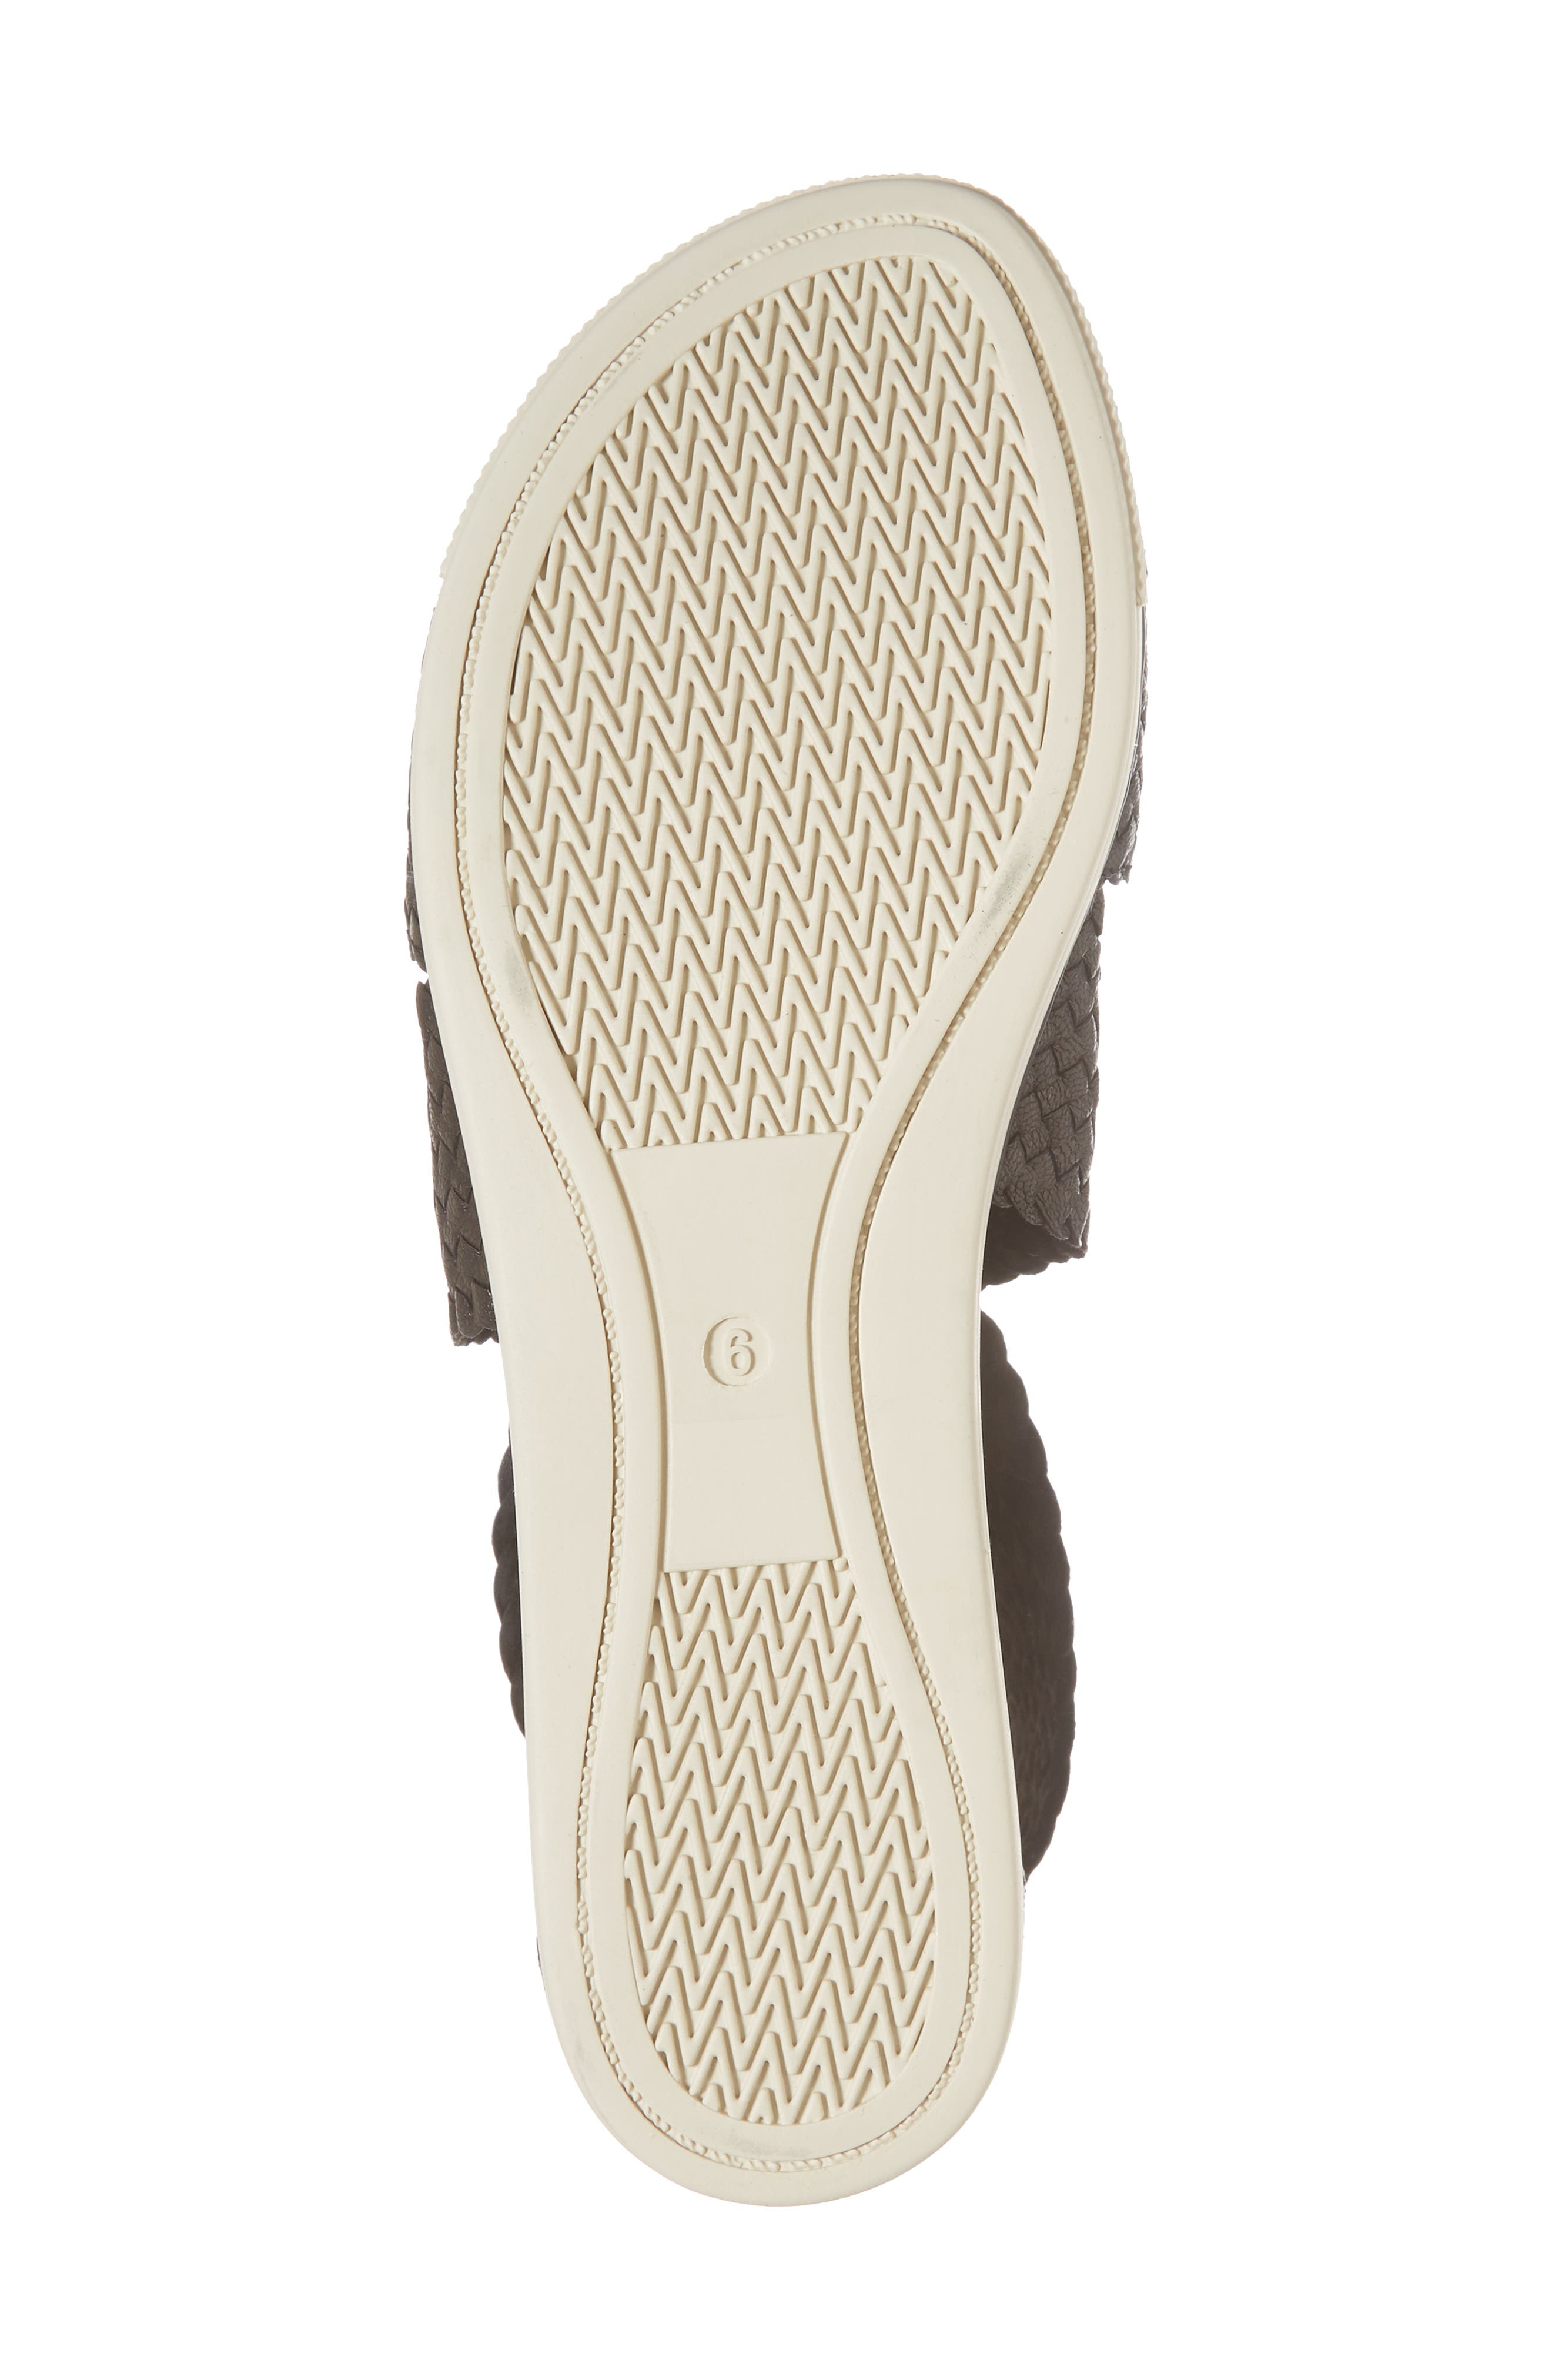 Sport Sandal,                             Alternate thumbnail 6, color,                             001